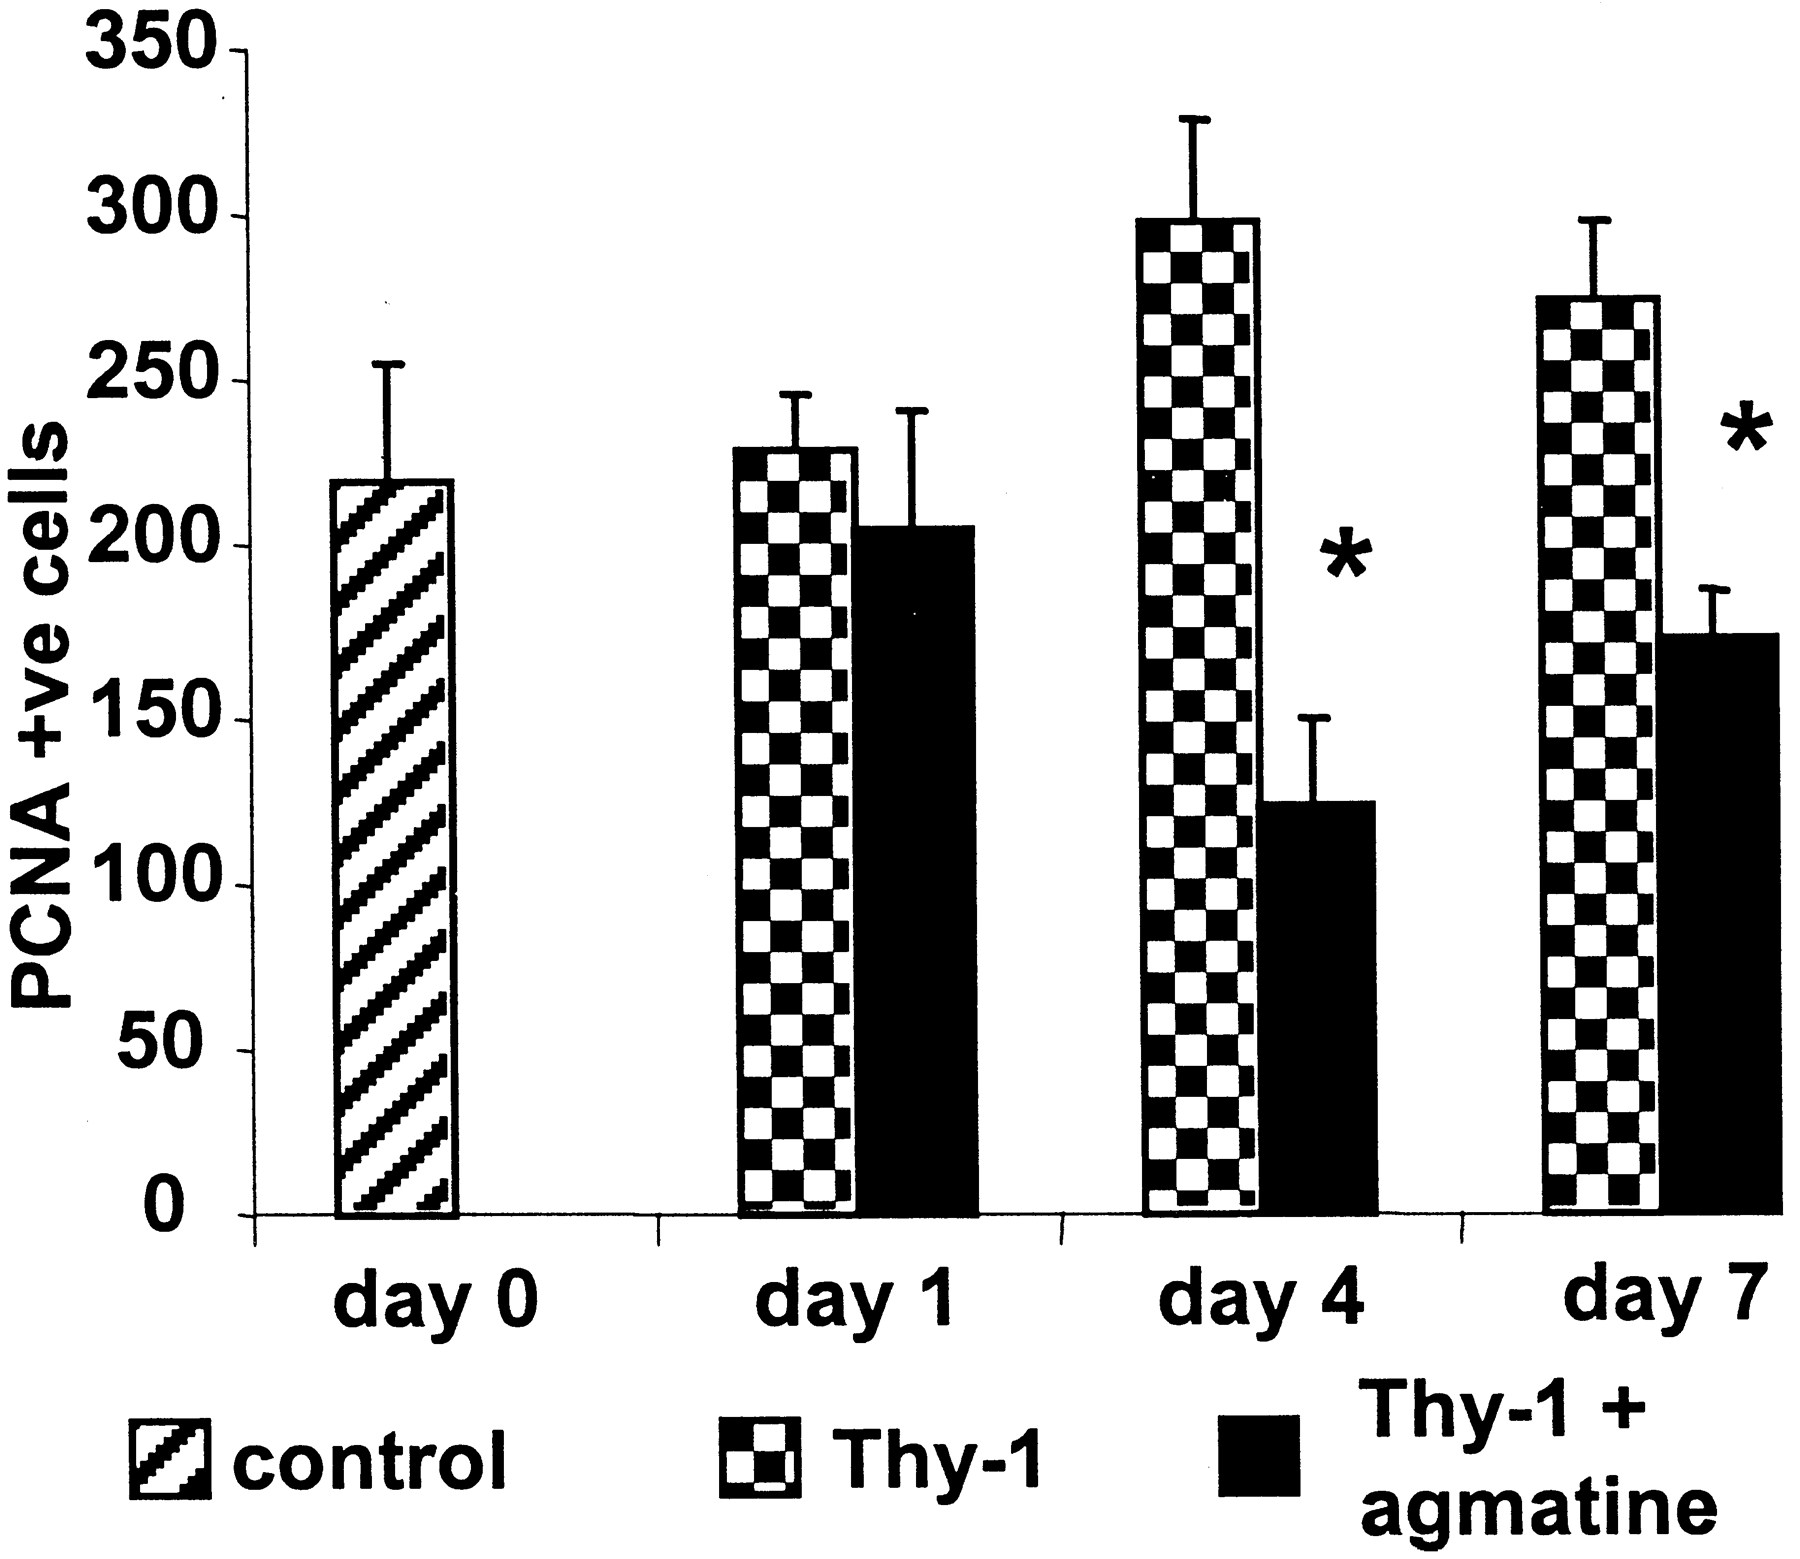 Agmatine Inhibits Cell Proliferation and Improves Renal Function in